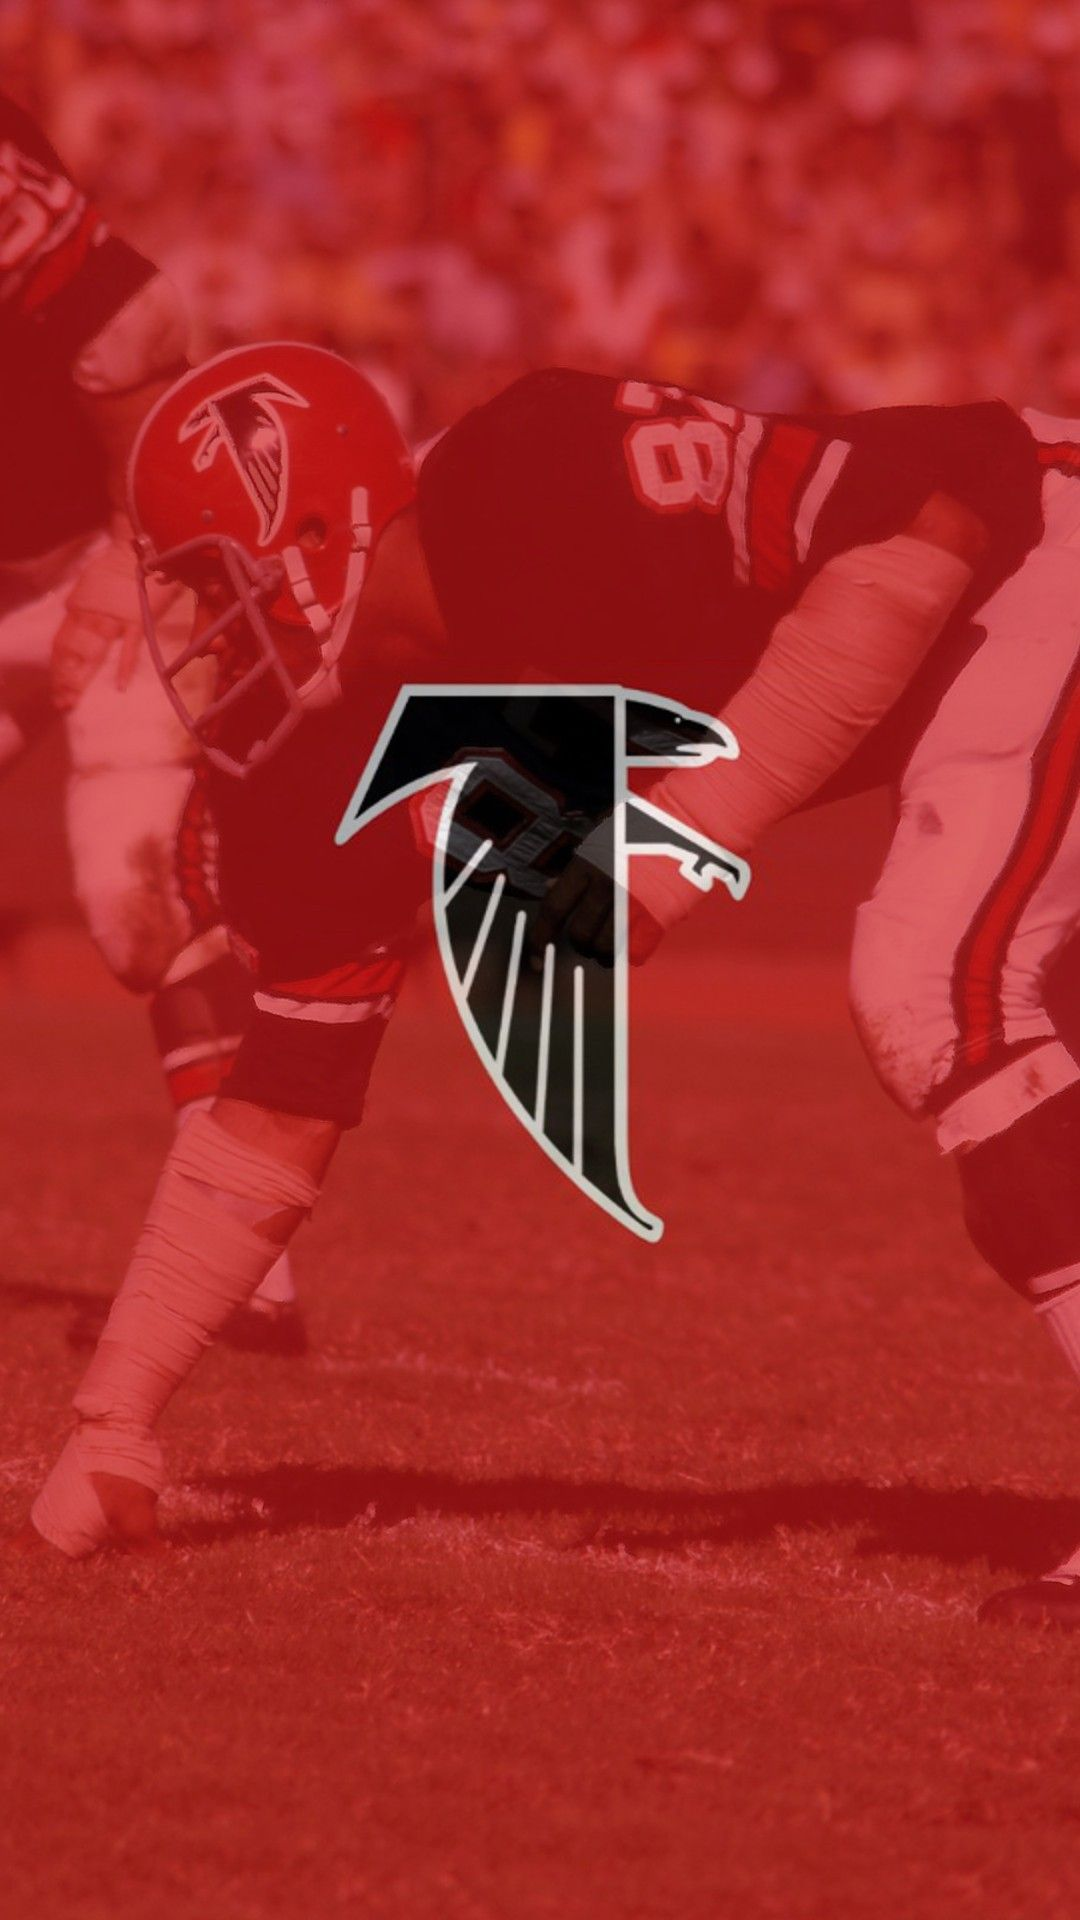 Atlanta Falcons iPhone 6 Wallpaper Best NFL Wallpaper